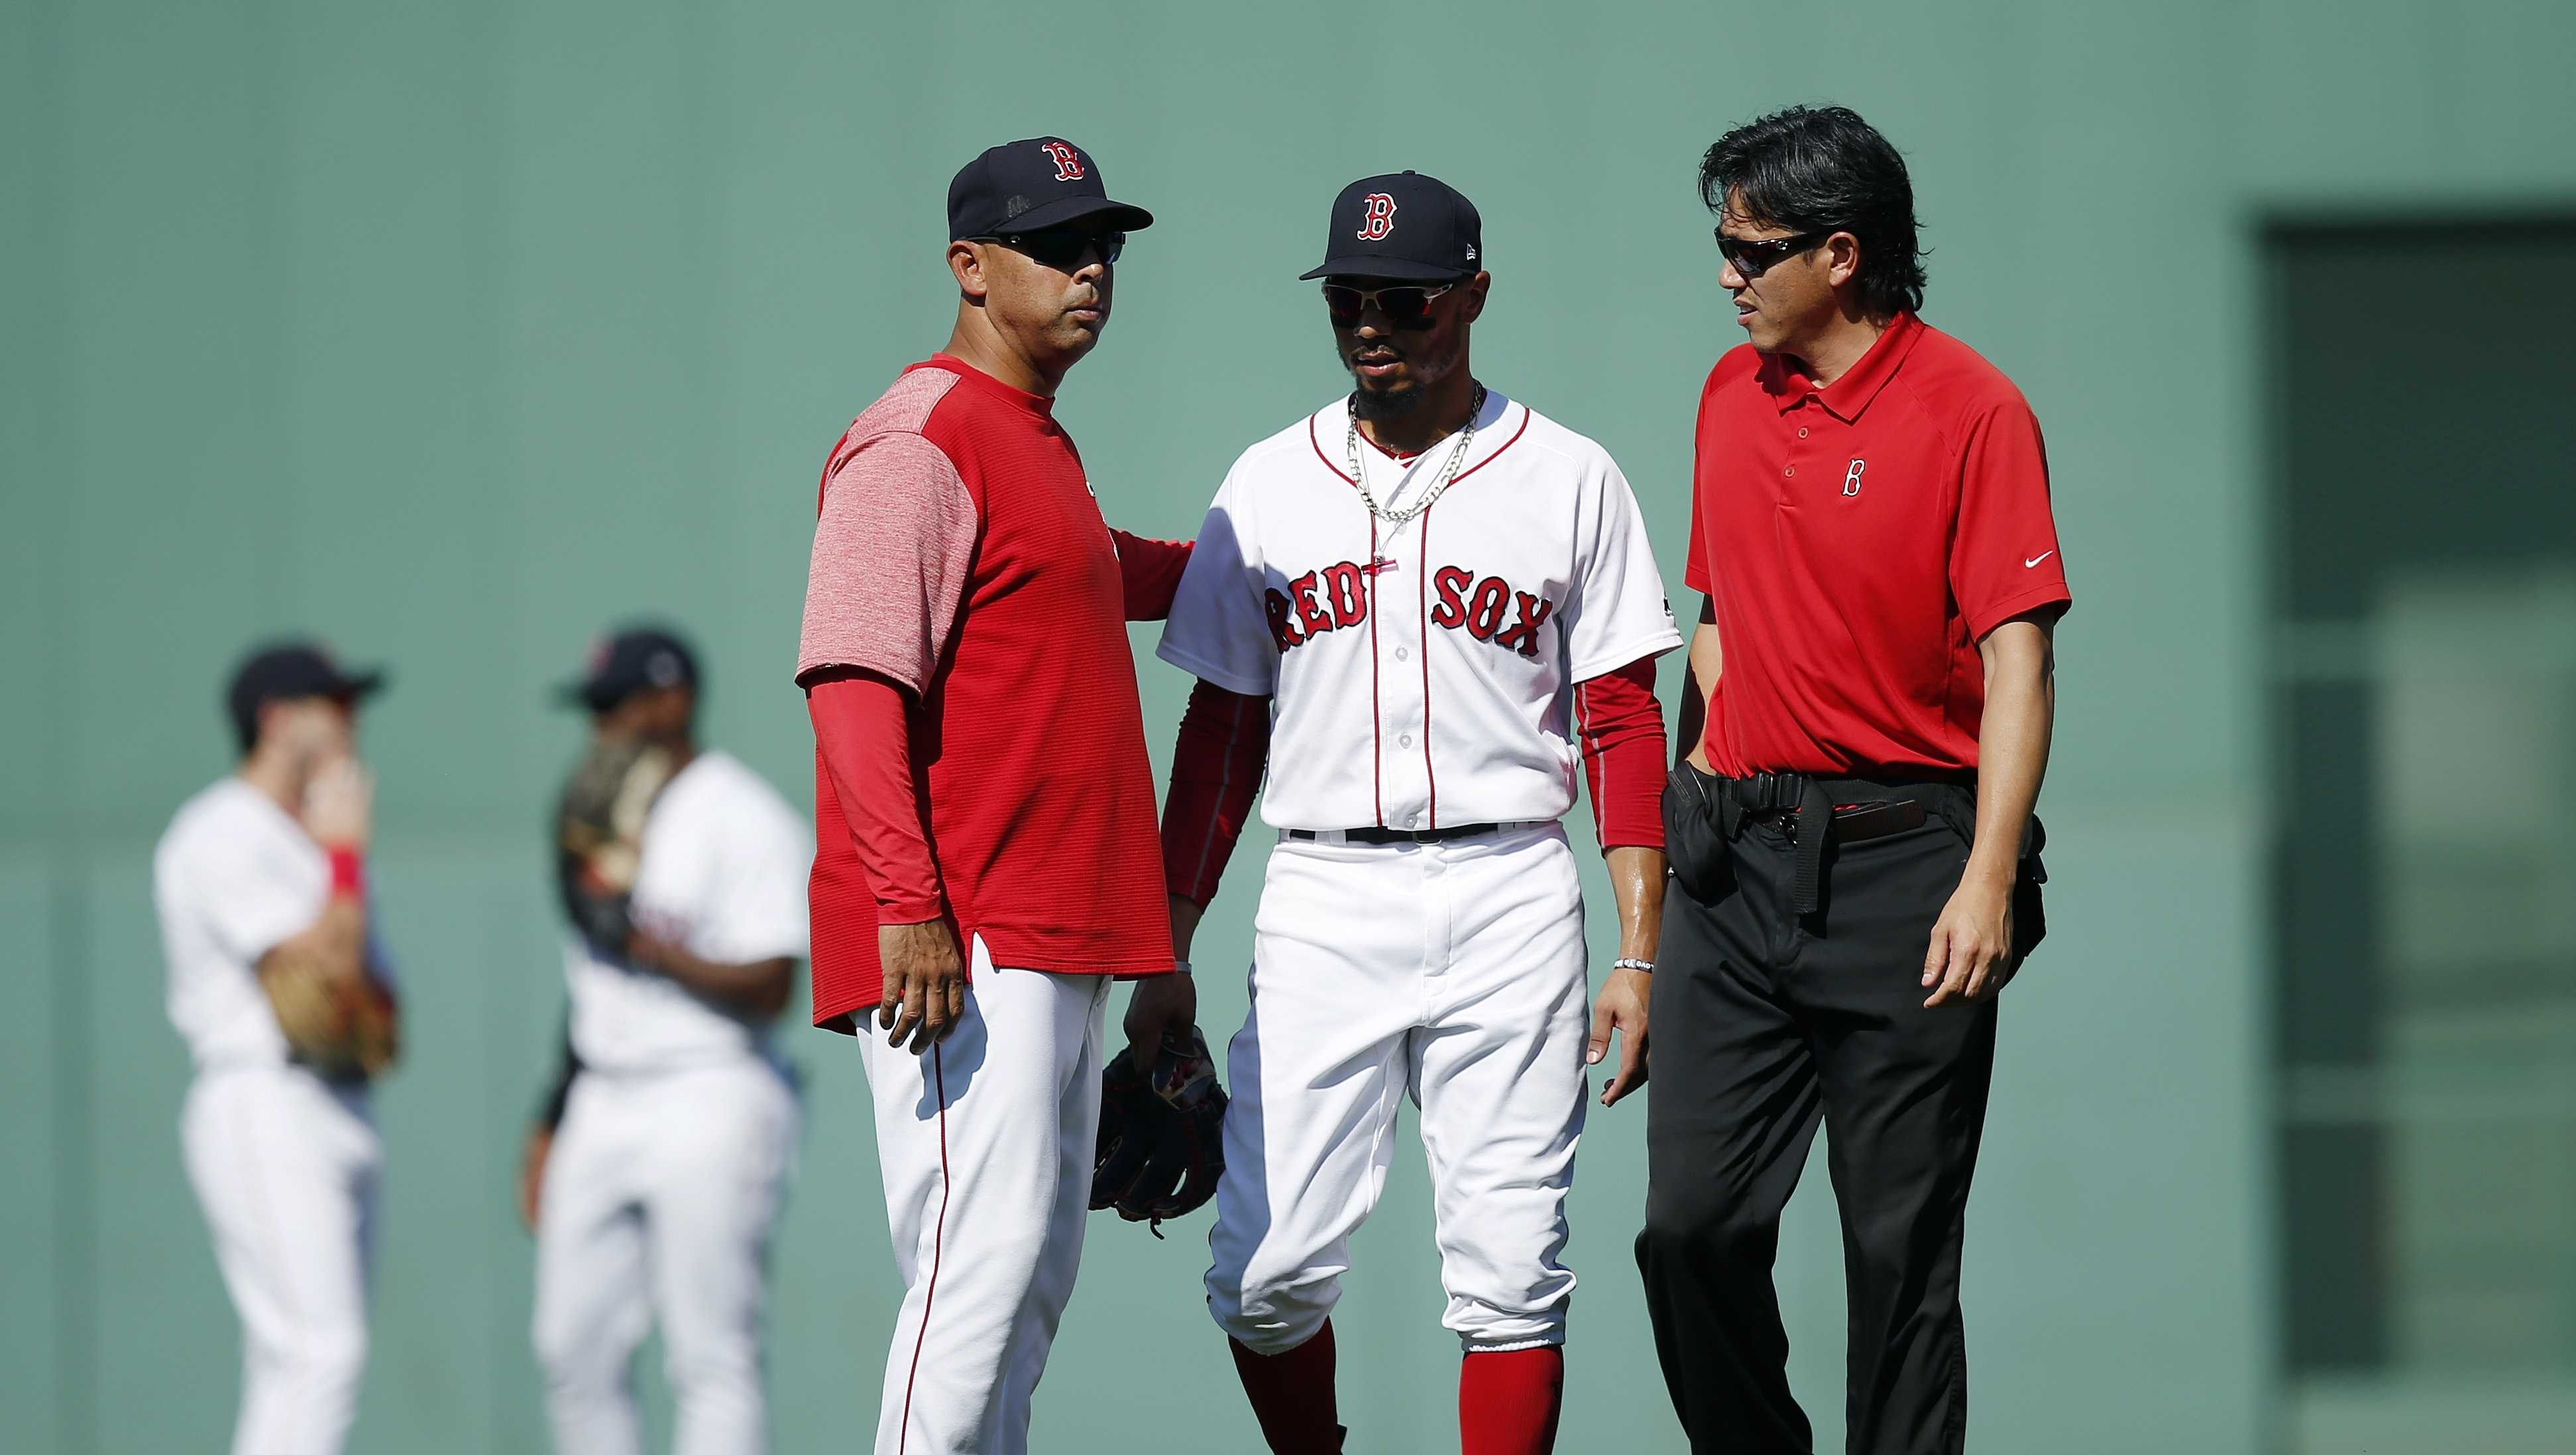 Boston Red Sox manager Alex Cora, foreground left, escorts Mookie Betts, center, off the field during the sixth inning of a baseball game against the New York Mets in Boston, Sunday, Sept. 16, 2018. (AP Photo/Michael Dwyer)